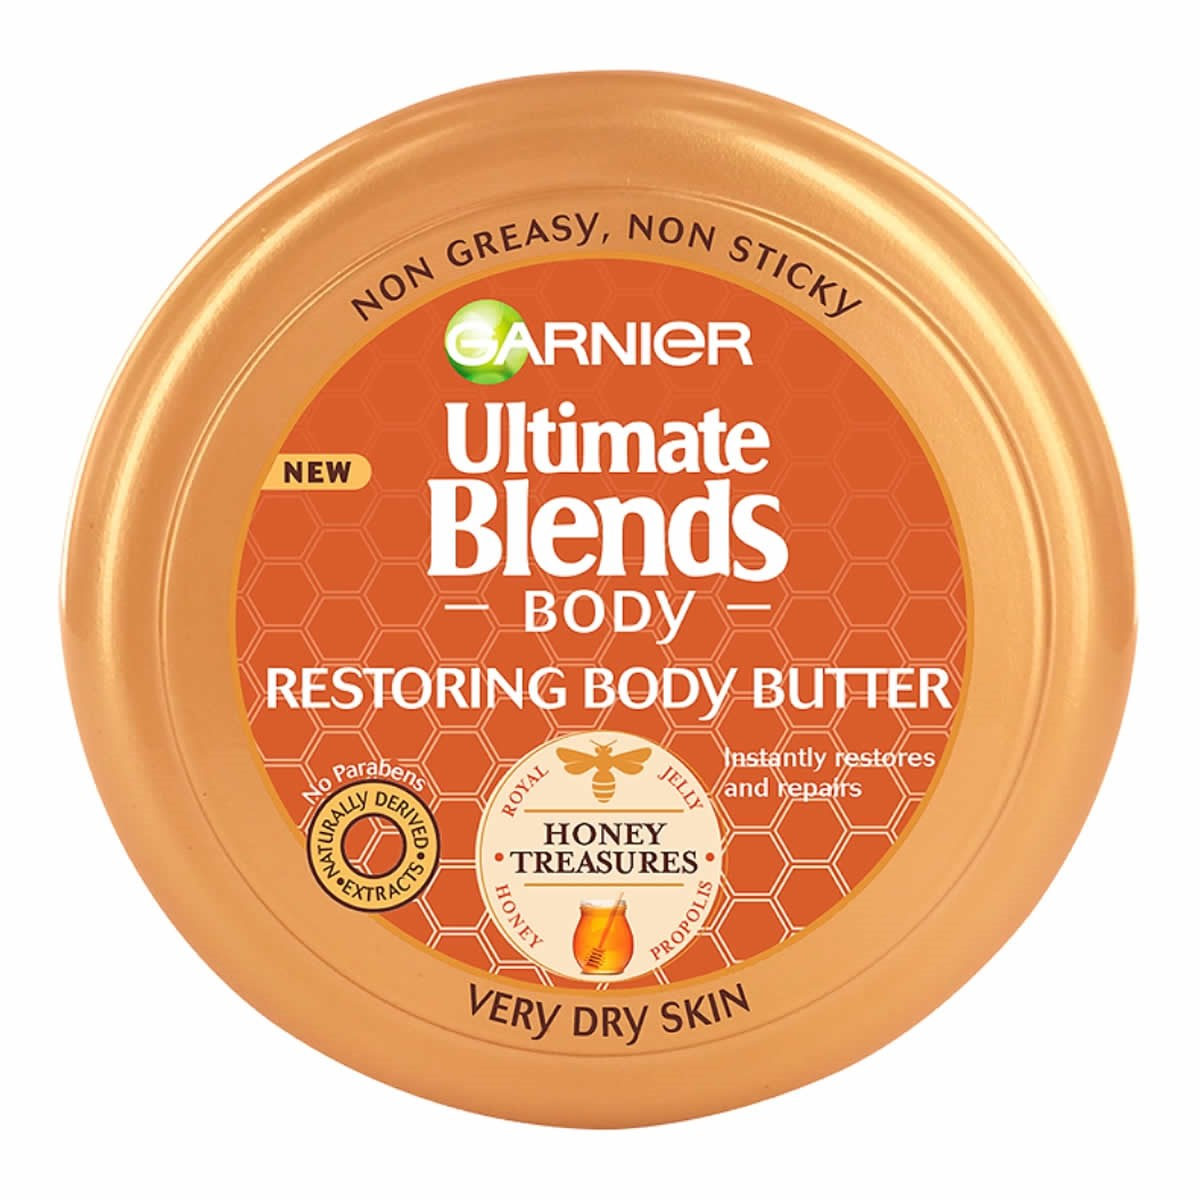 Garnier Ultimate Blends Body Honey Treasures Restoring Butter